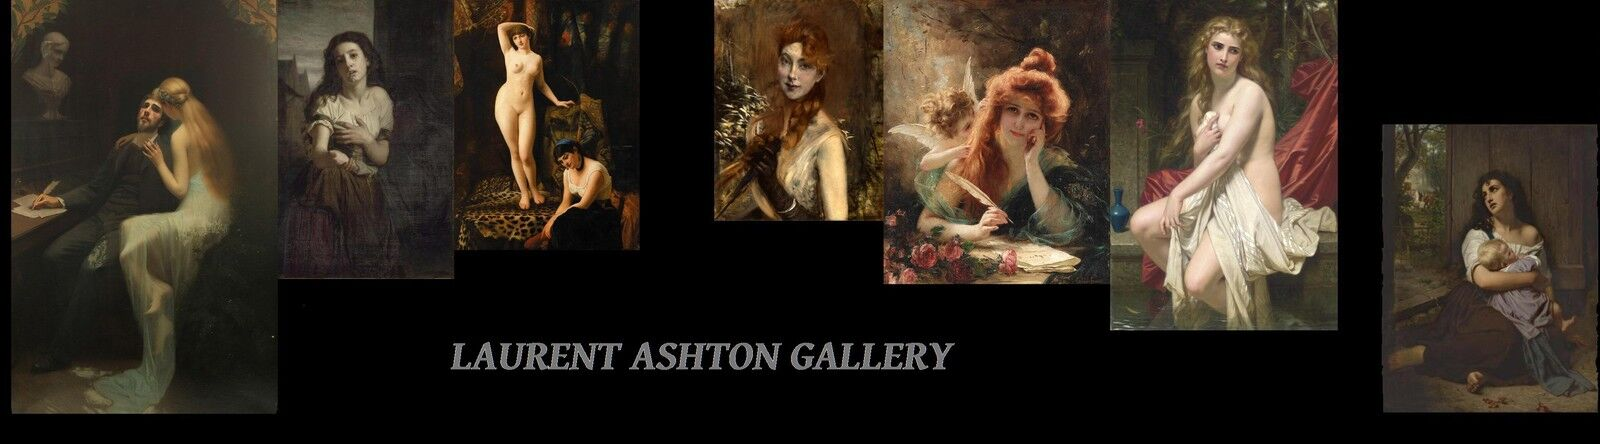 Laurent Ashton Gallery